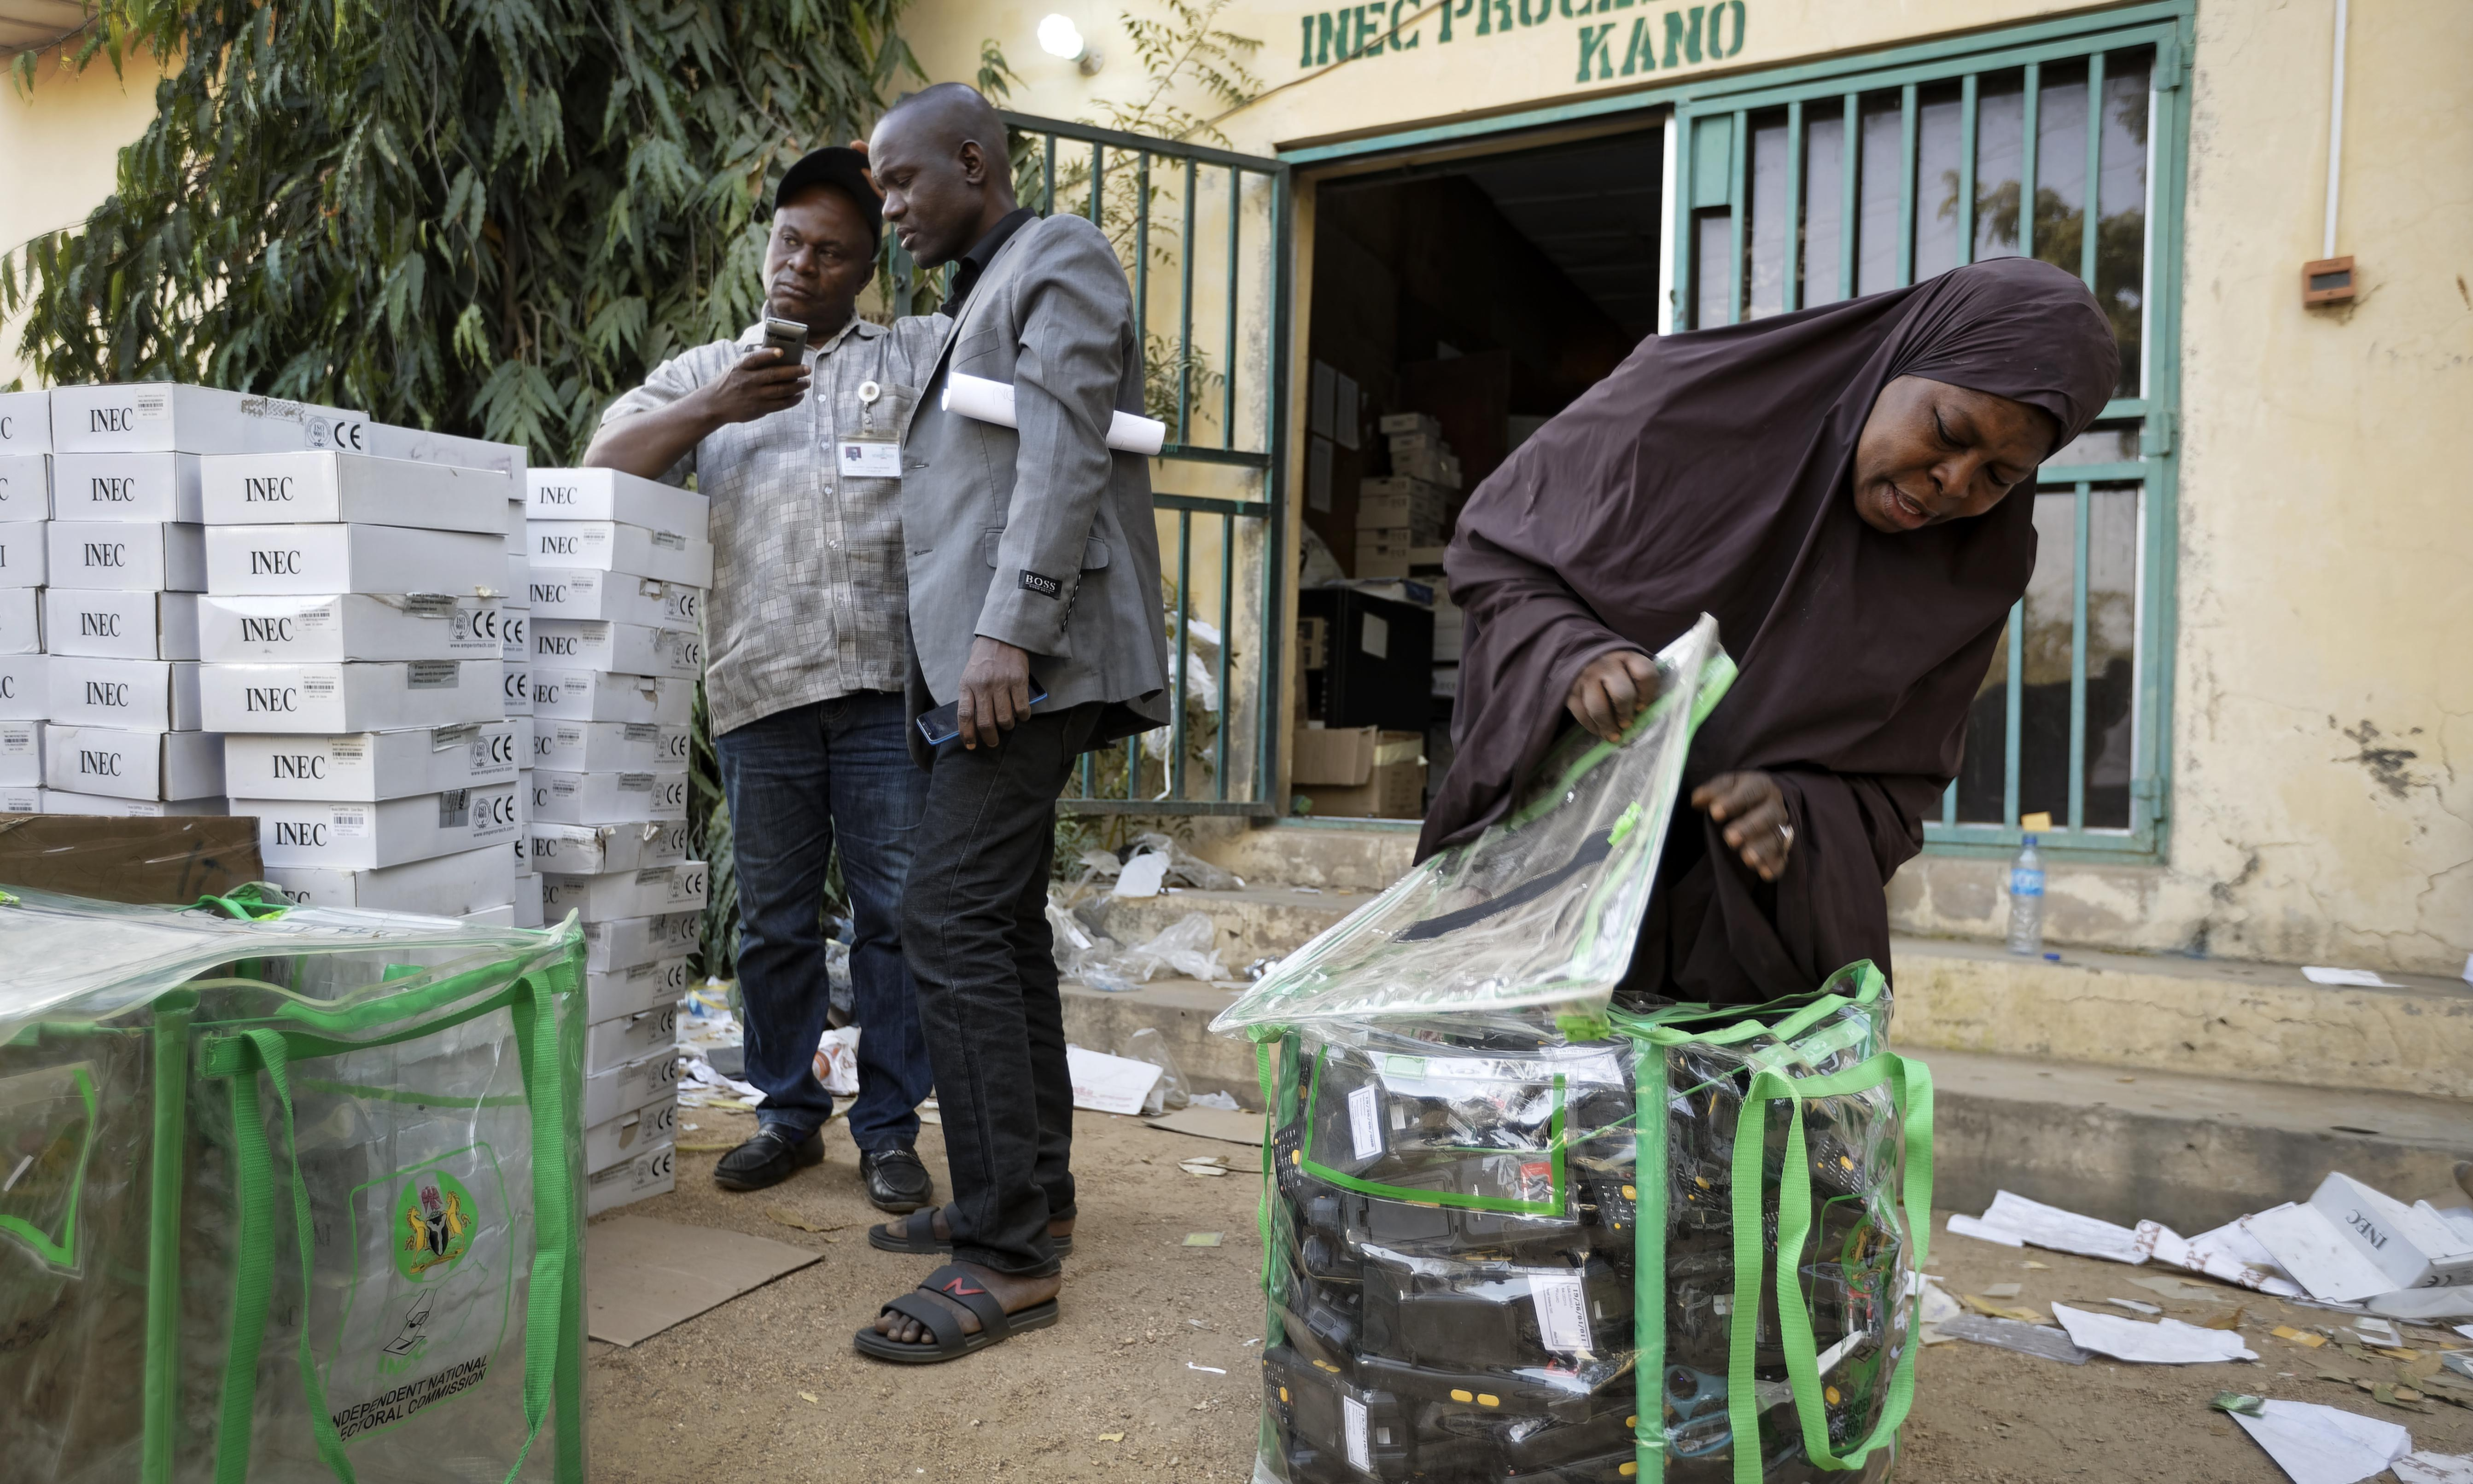 Nigerians set to go to polls in referendum on Buhari's first term